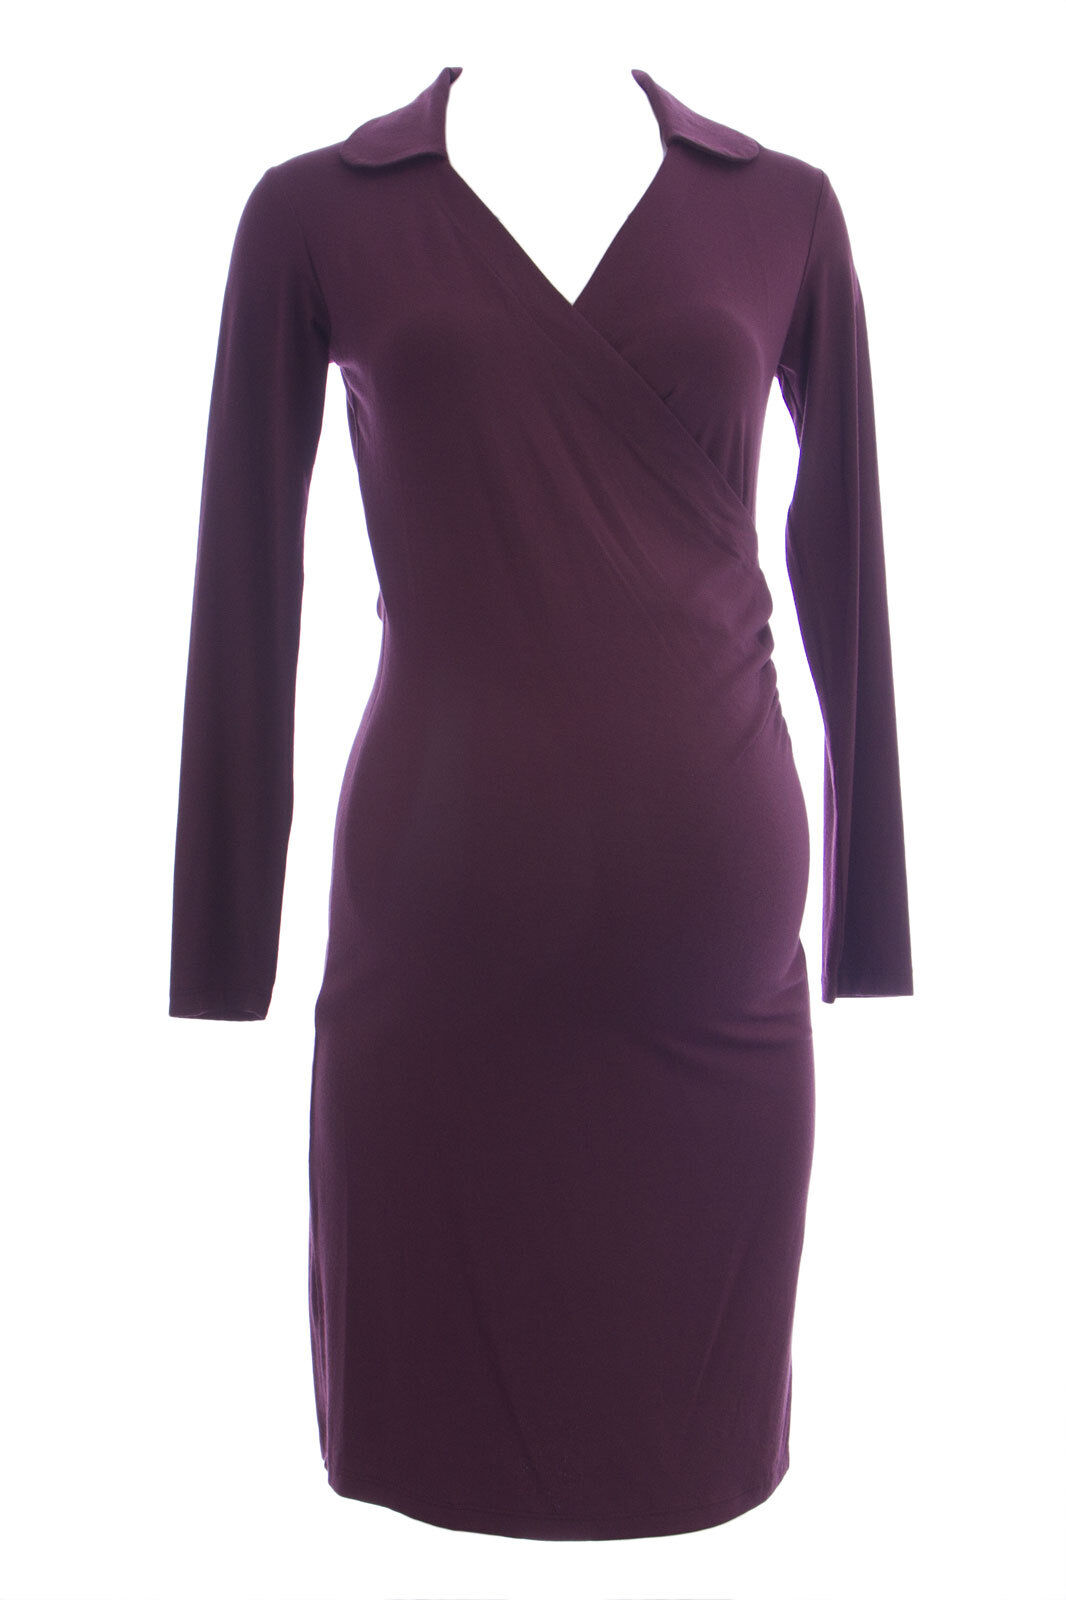 OLIAN Maternity Women's Sangria Faux Wrap Long Sleeve Collared Dress XS NEW